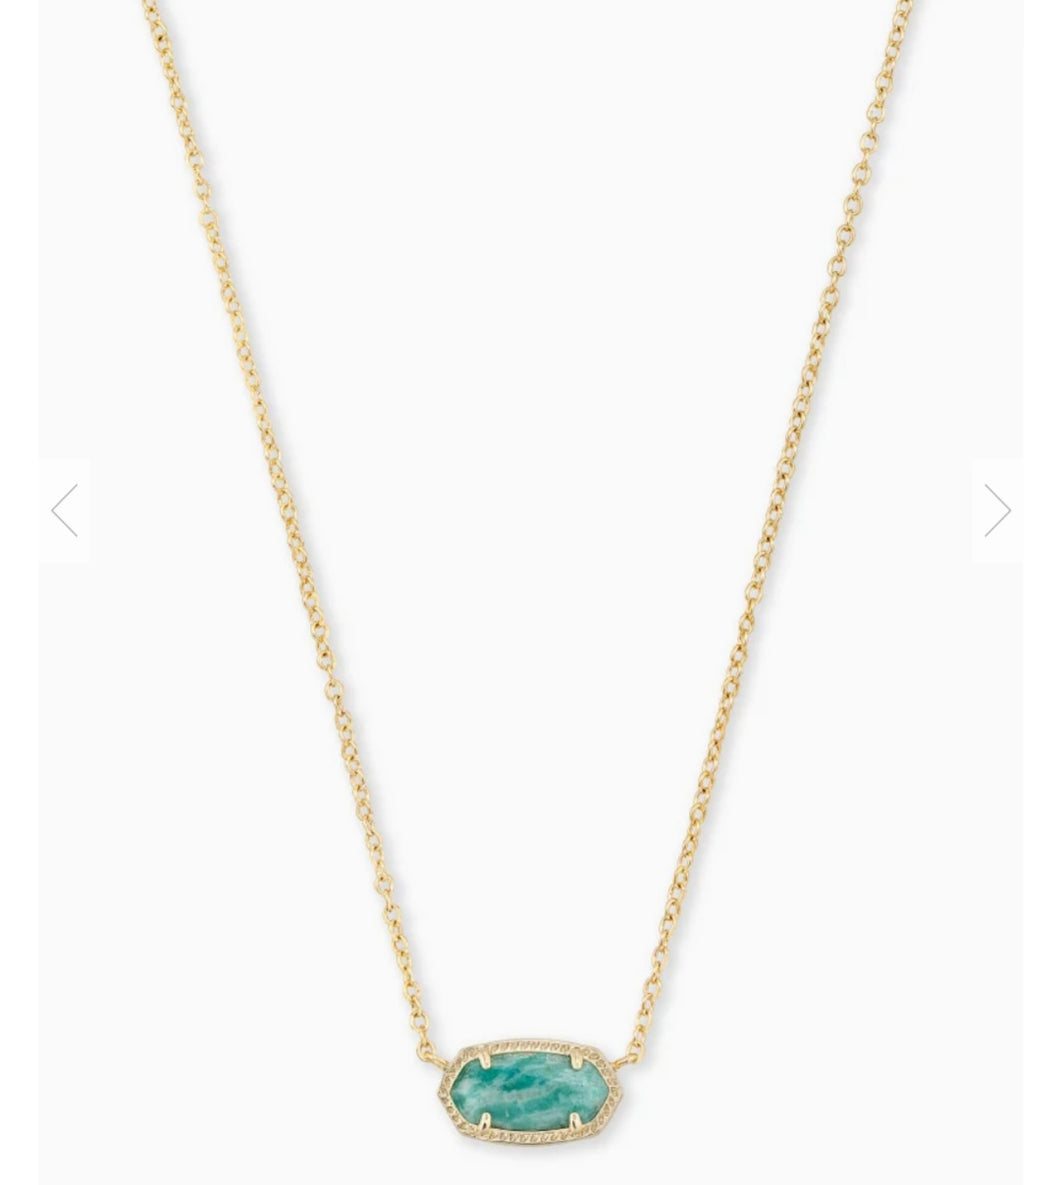 Kendra Scott Elisa Gold Pendant Necklace in Dark Teal Amazonite